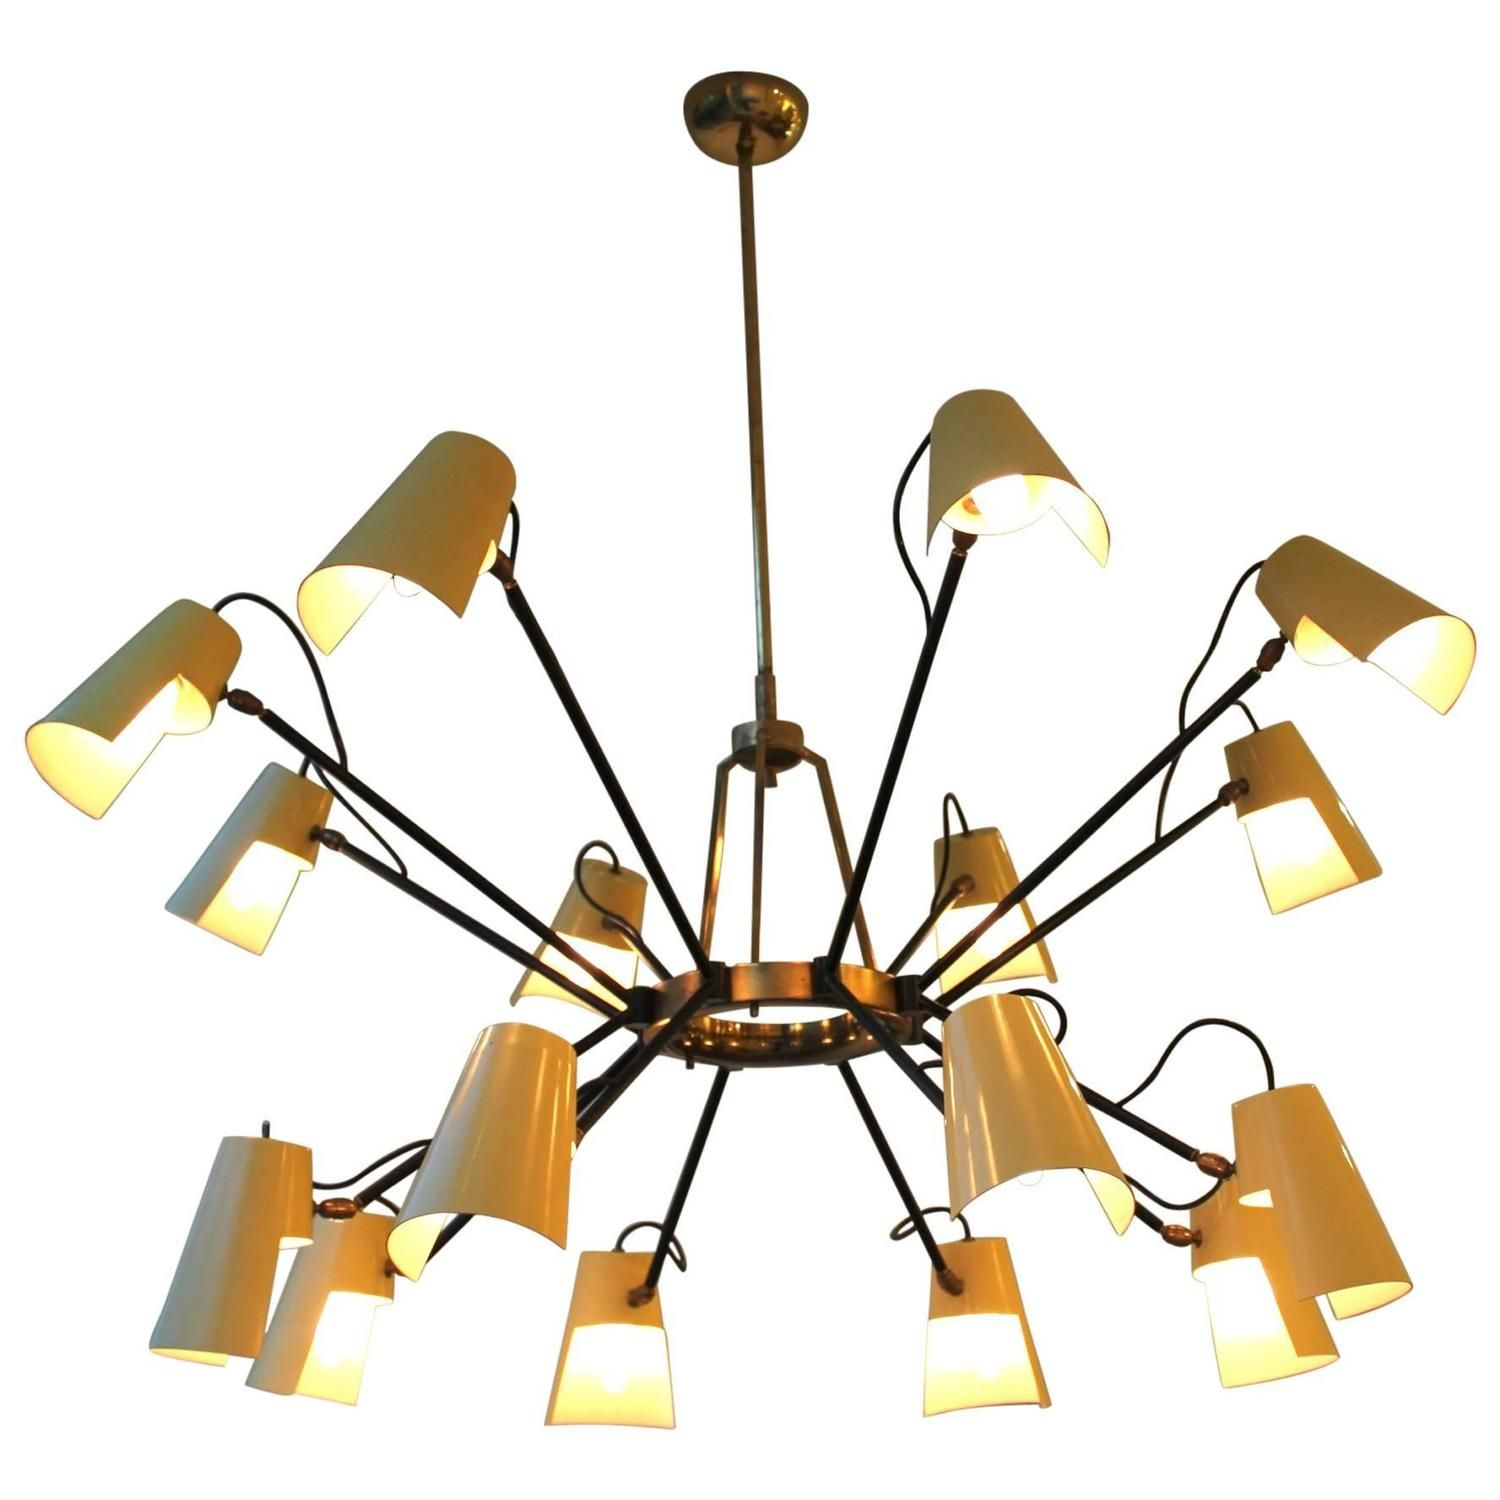 Rare Pale Yellow Chandelier by Stilnovo from 1950s